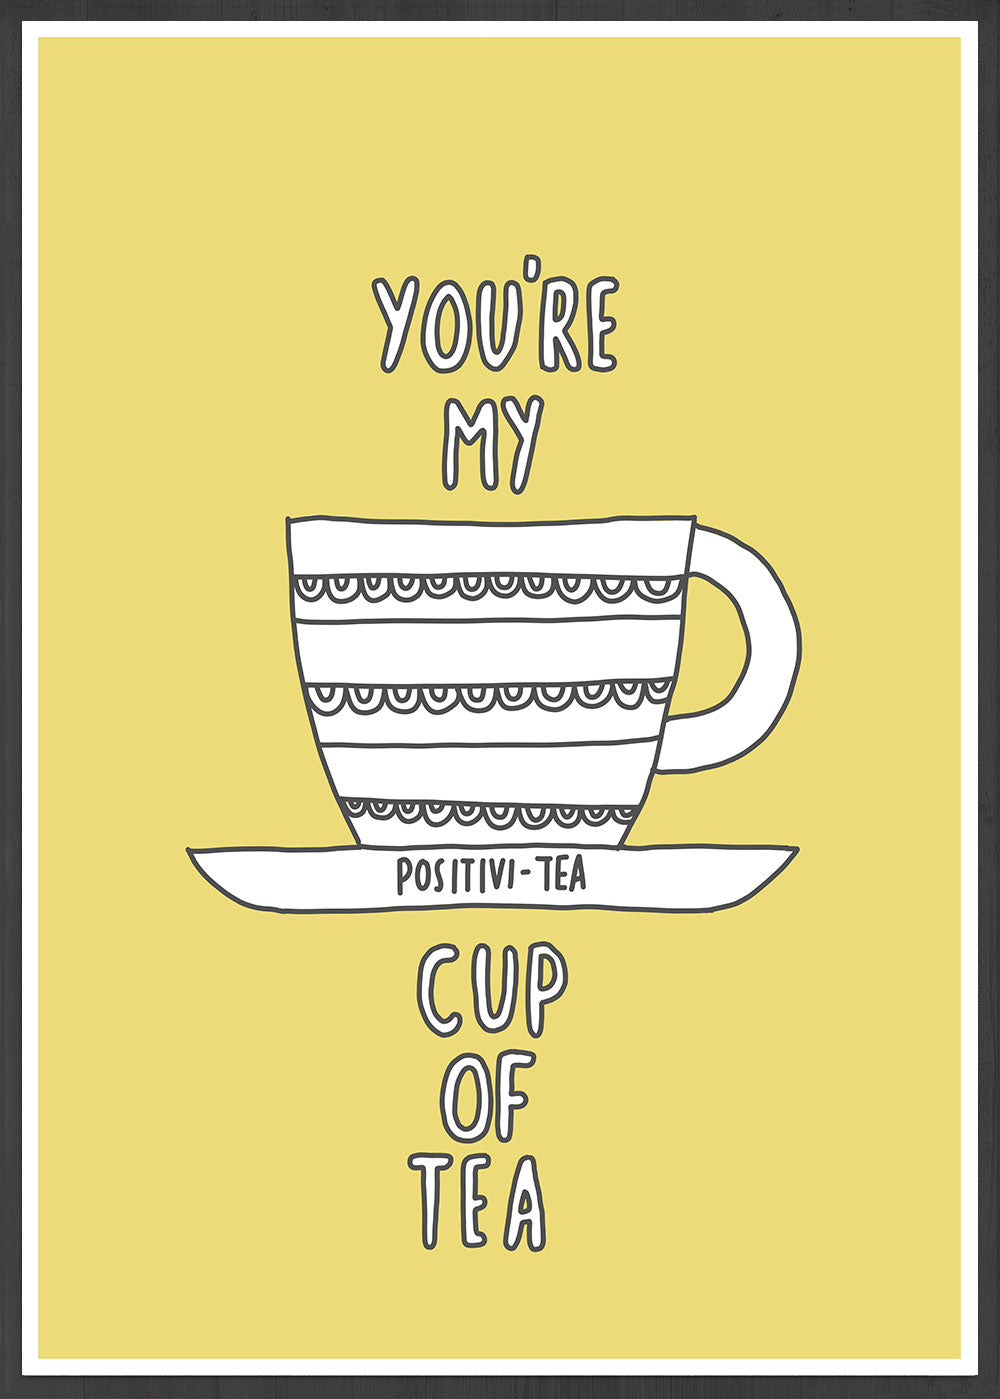 Youre My Cup of Tea Poster Art in a frame